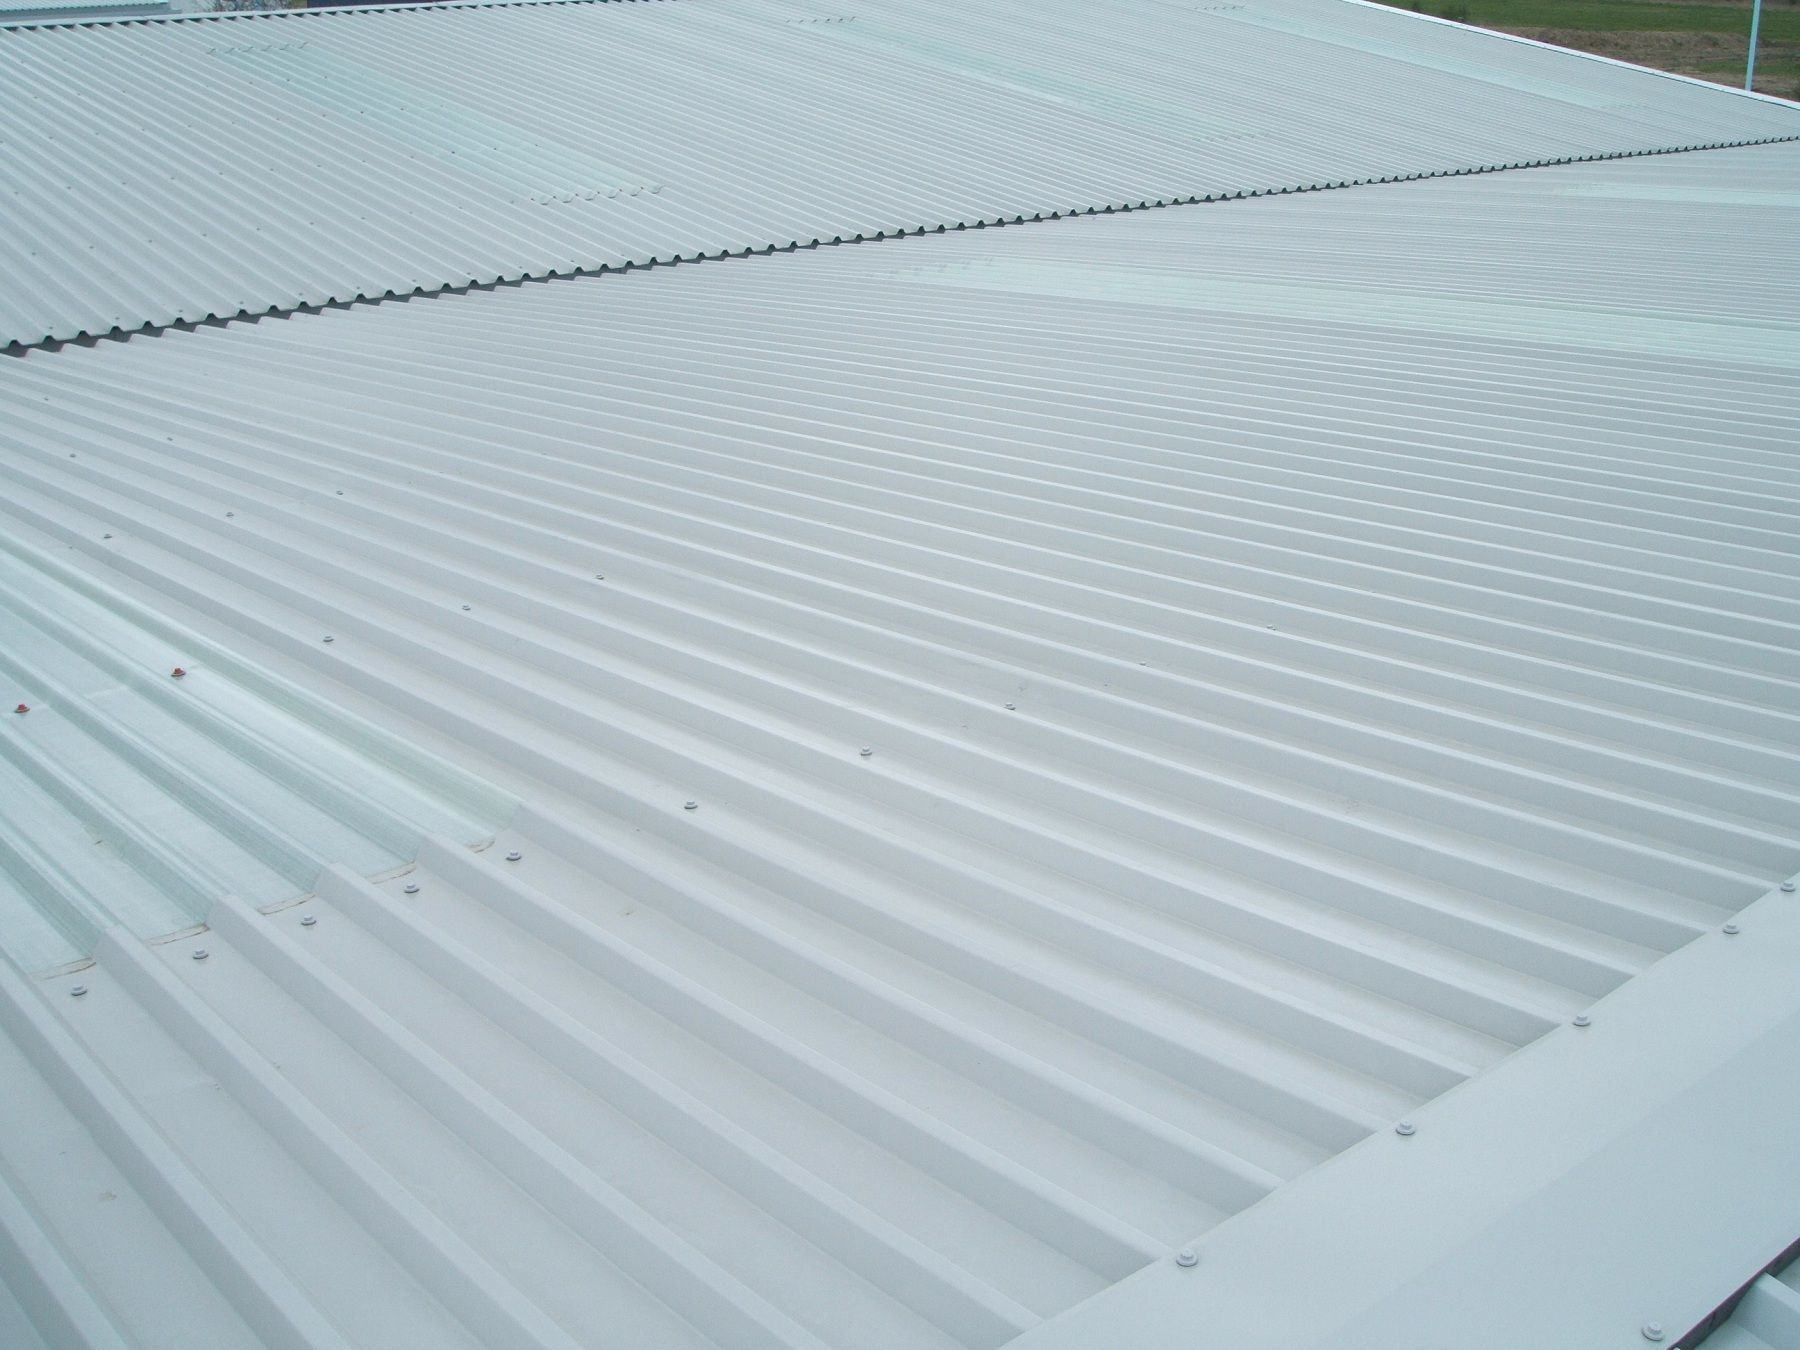 Factory Corrugated Roof Google Search Corrugated Roofing Factory Corrugated